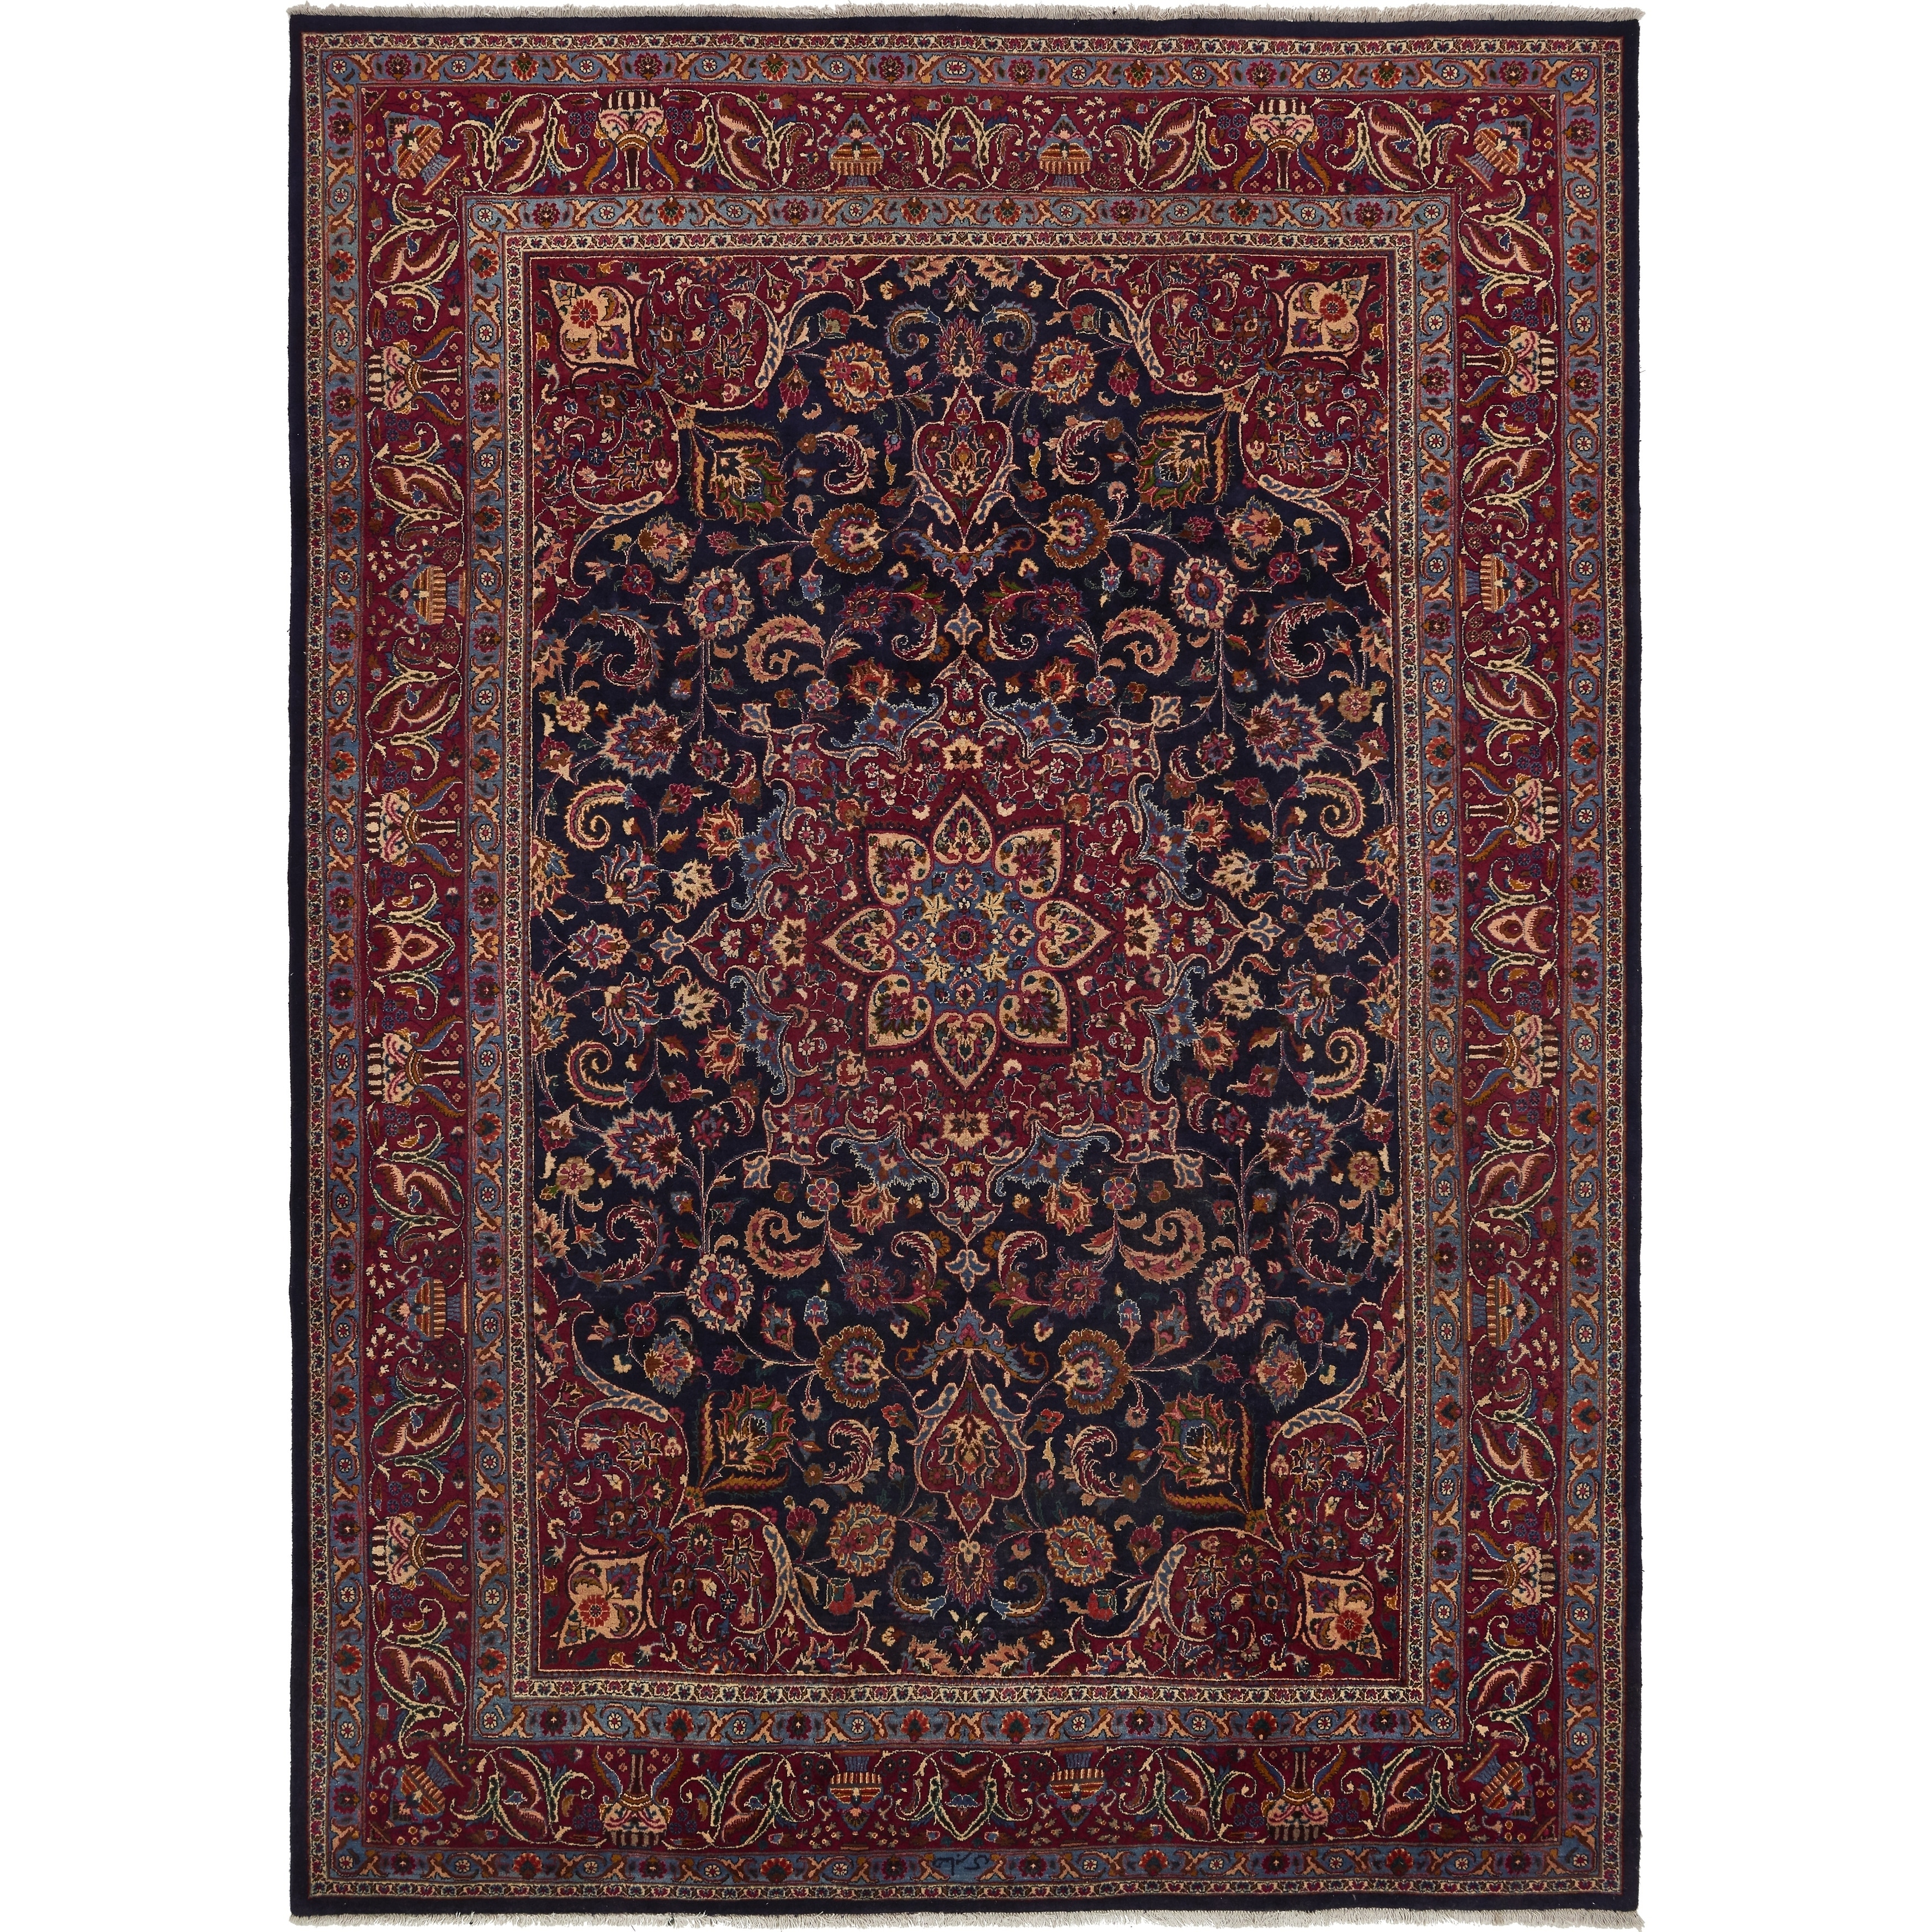 Hand Knotted Kashmar Semi Antique Wool Area Rug - 9 10 x 13 5 (Navy blue - 9 10 x 13 5)